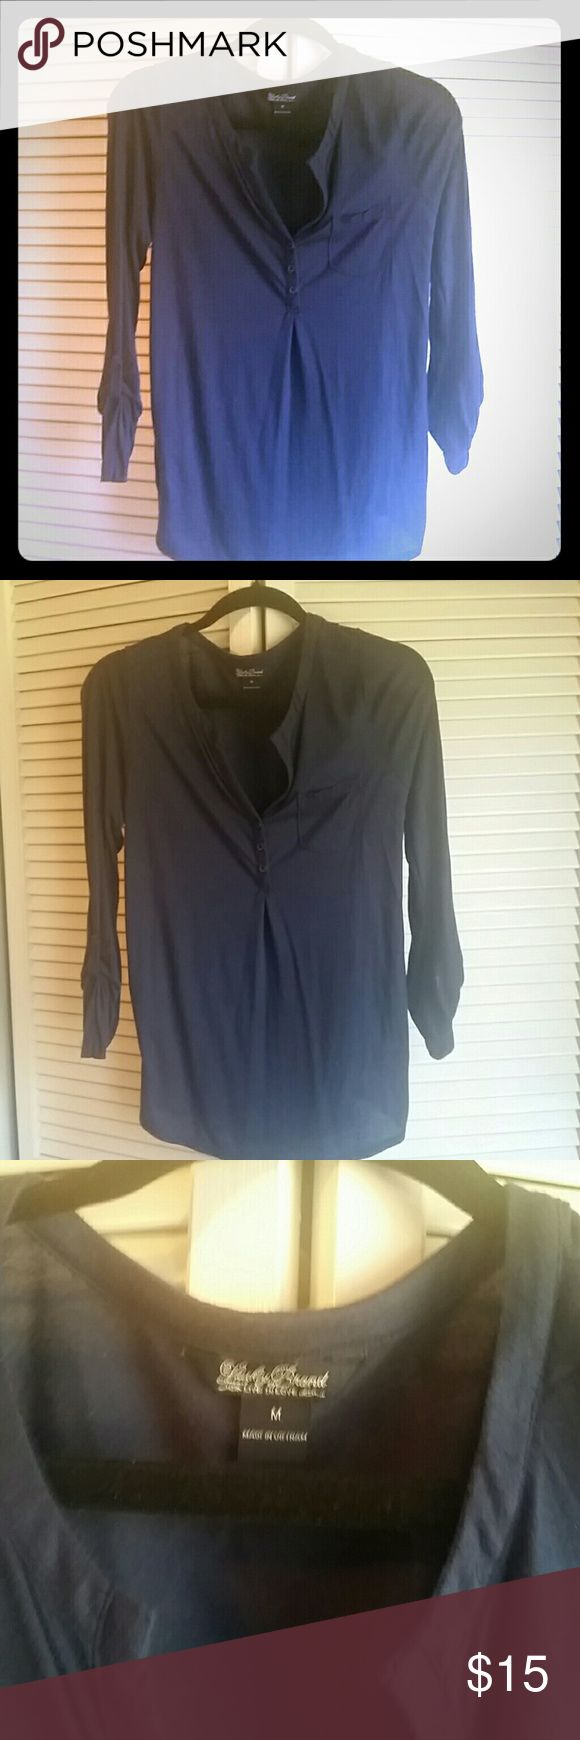 Lucky Brand Henley shirt Navy lucky Brand Henley shirt. Good condition. Has some peeling but no holes or tears. Size medium Lucky Brand Tops Blouses